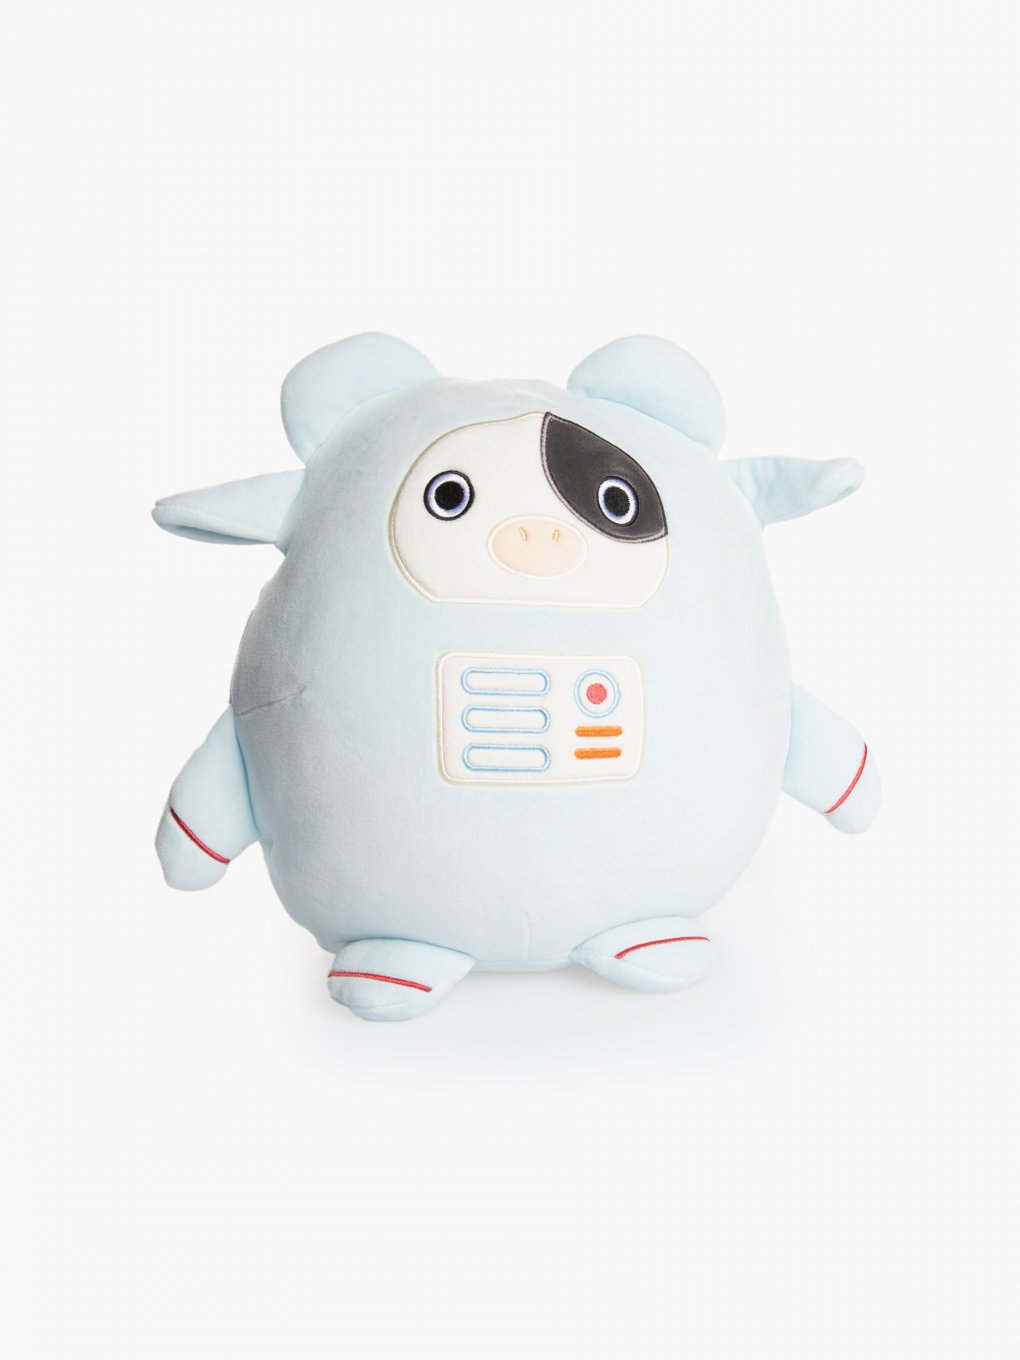 Space cow pillow